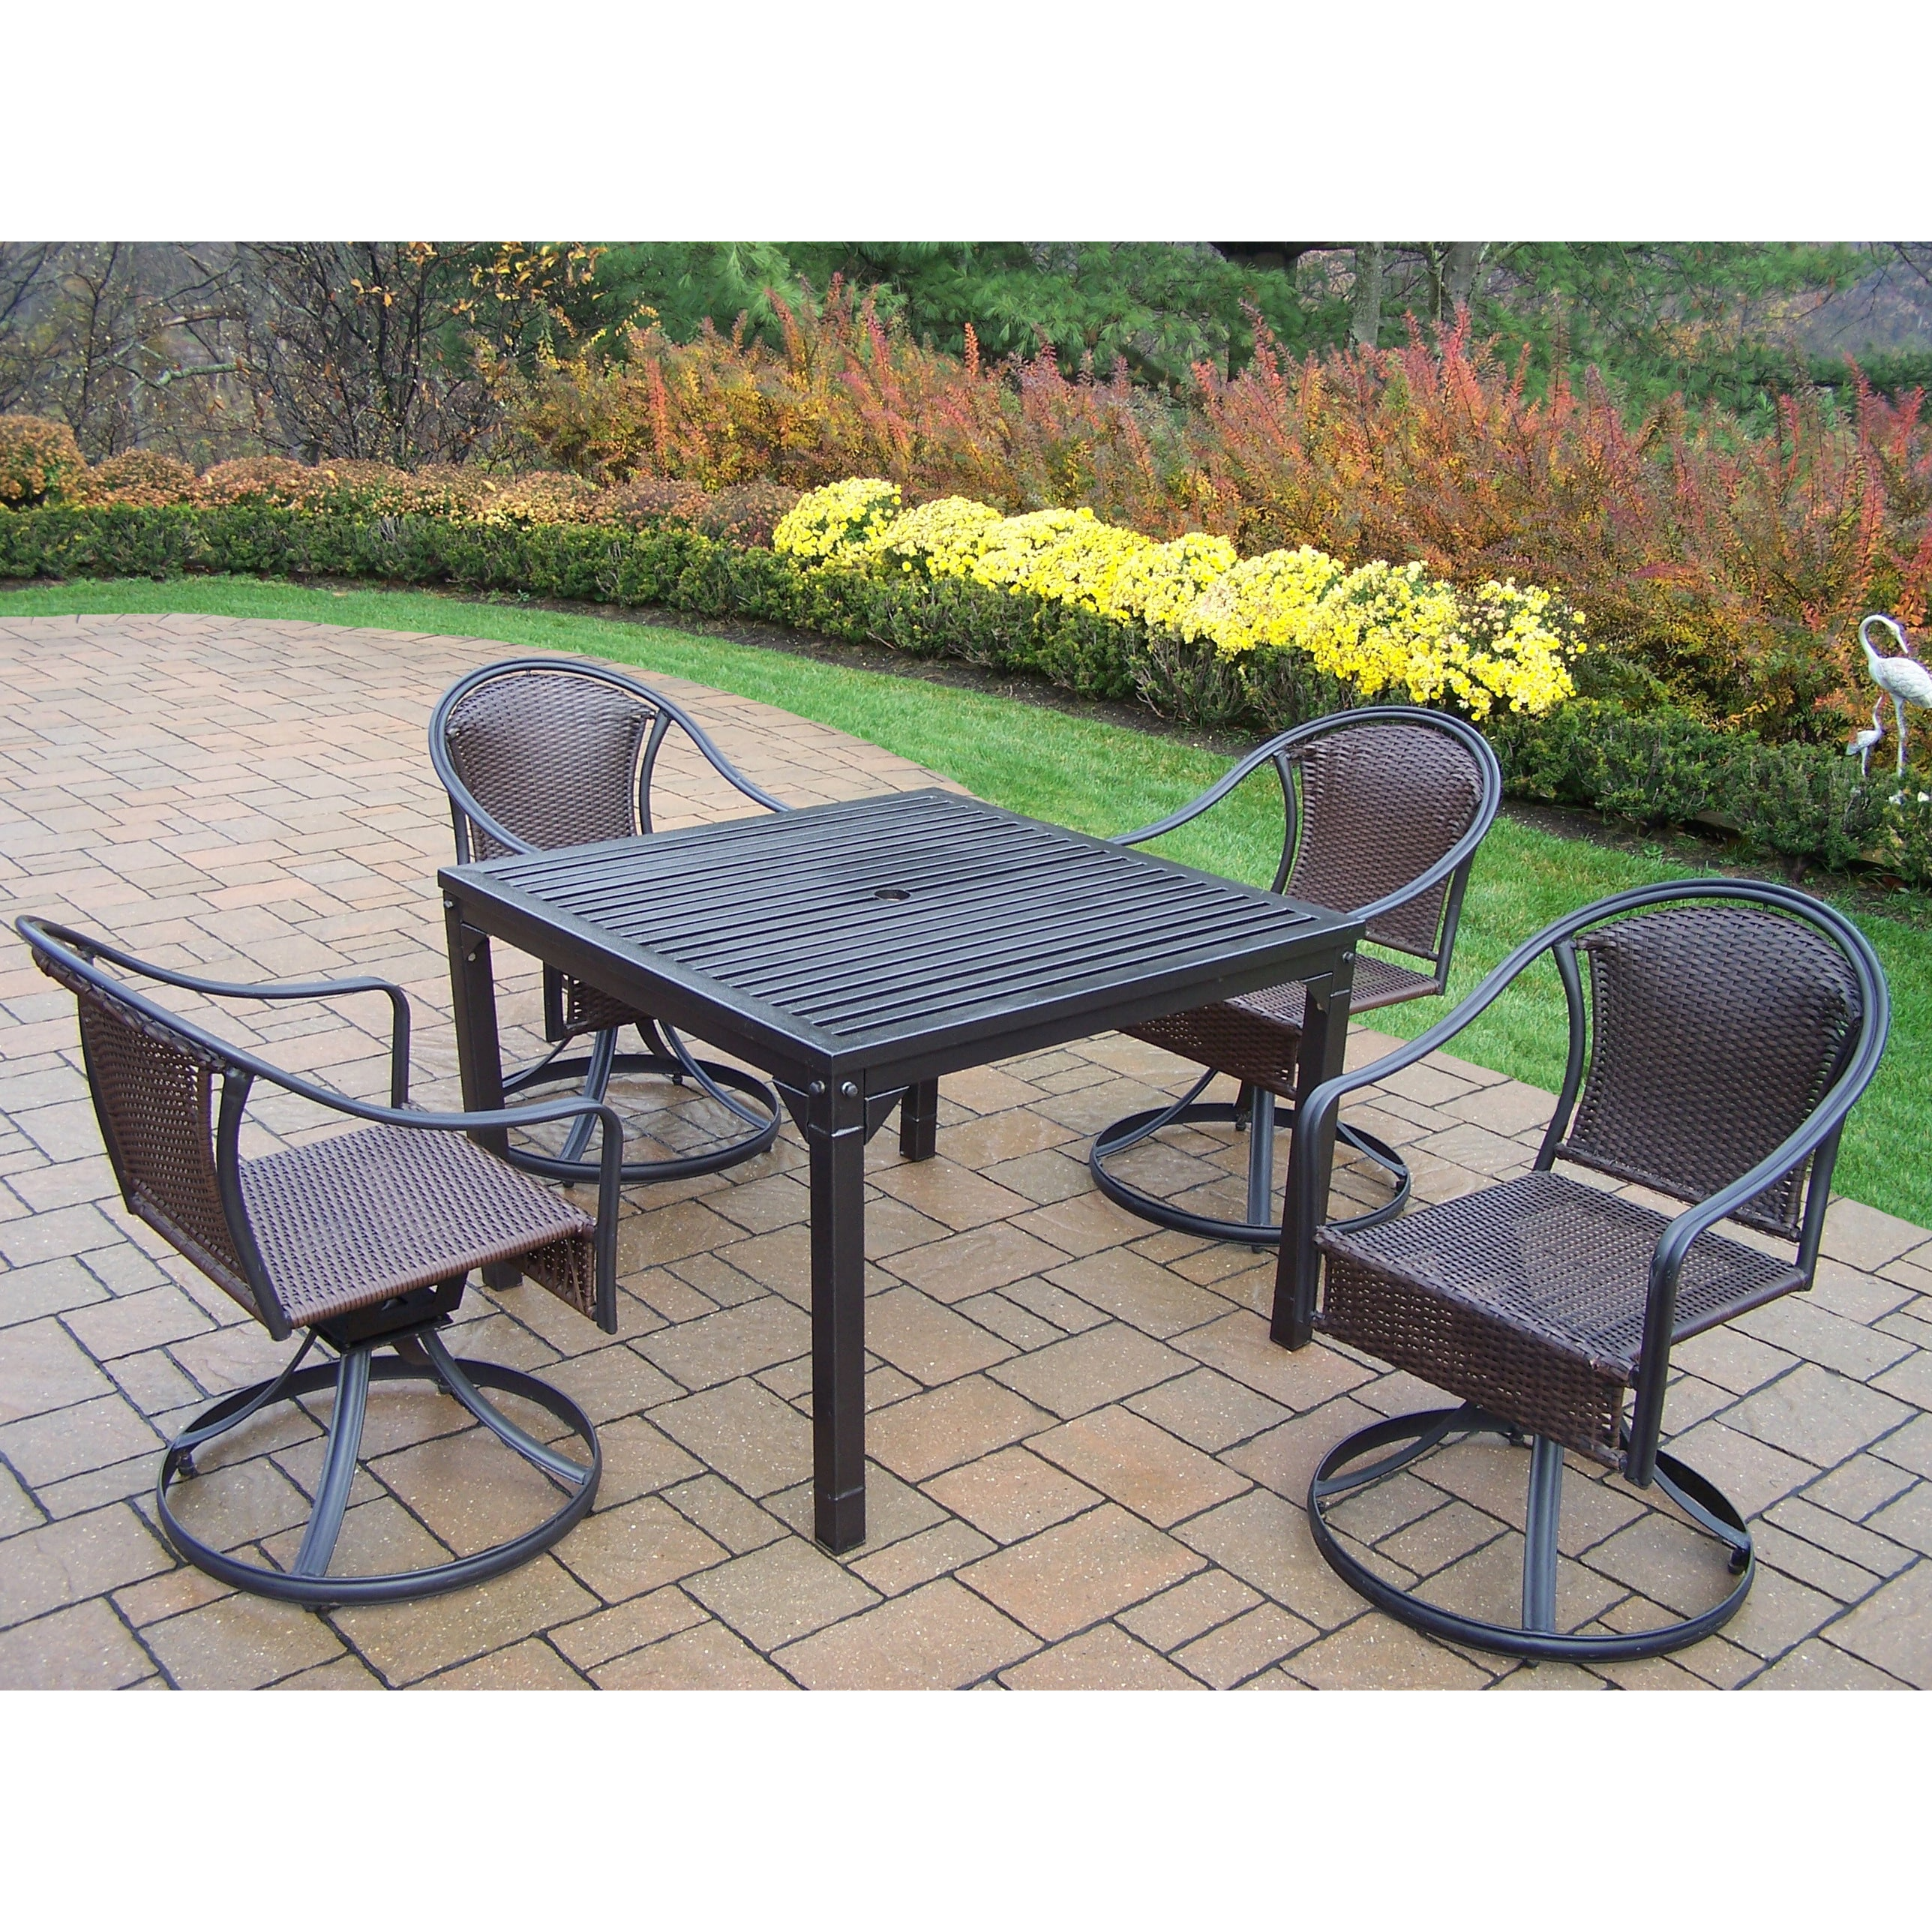 Oakland Living Corporation Hometown Outdoor Dining Set with 4 Wicker Swivel Chairs